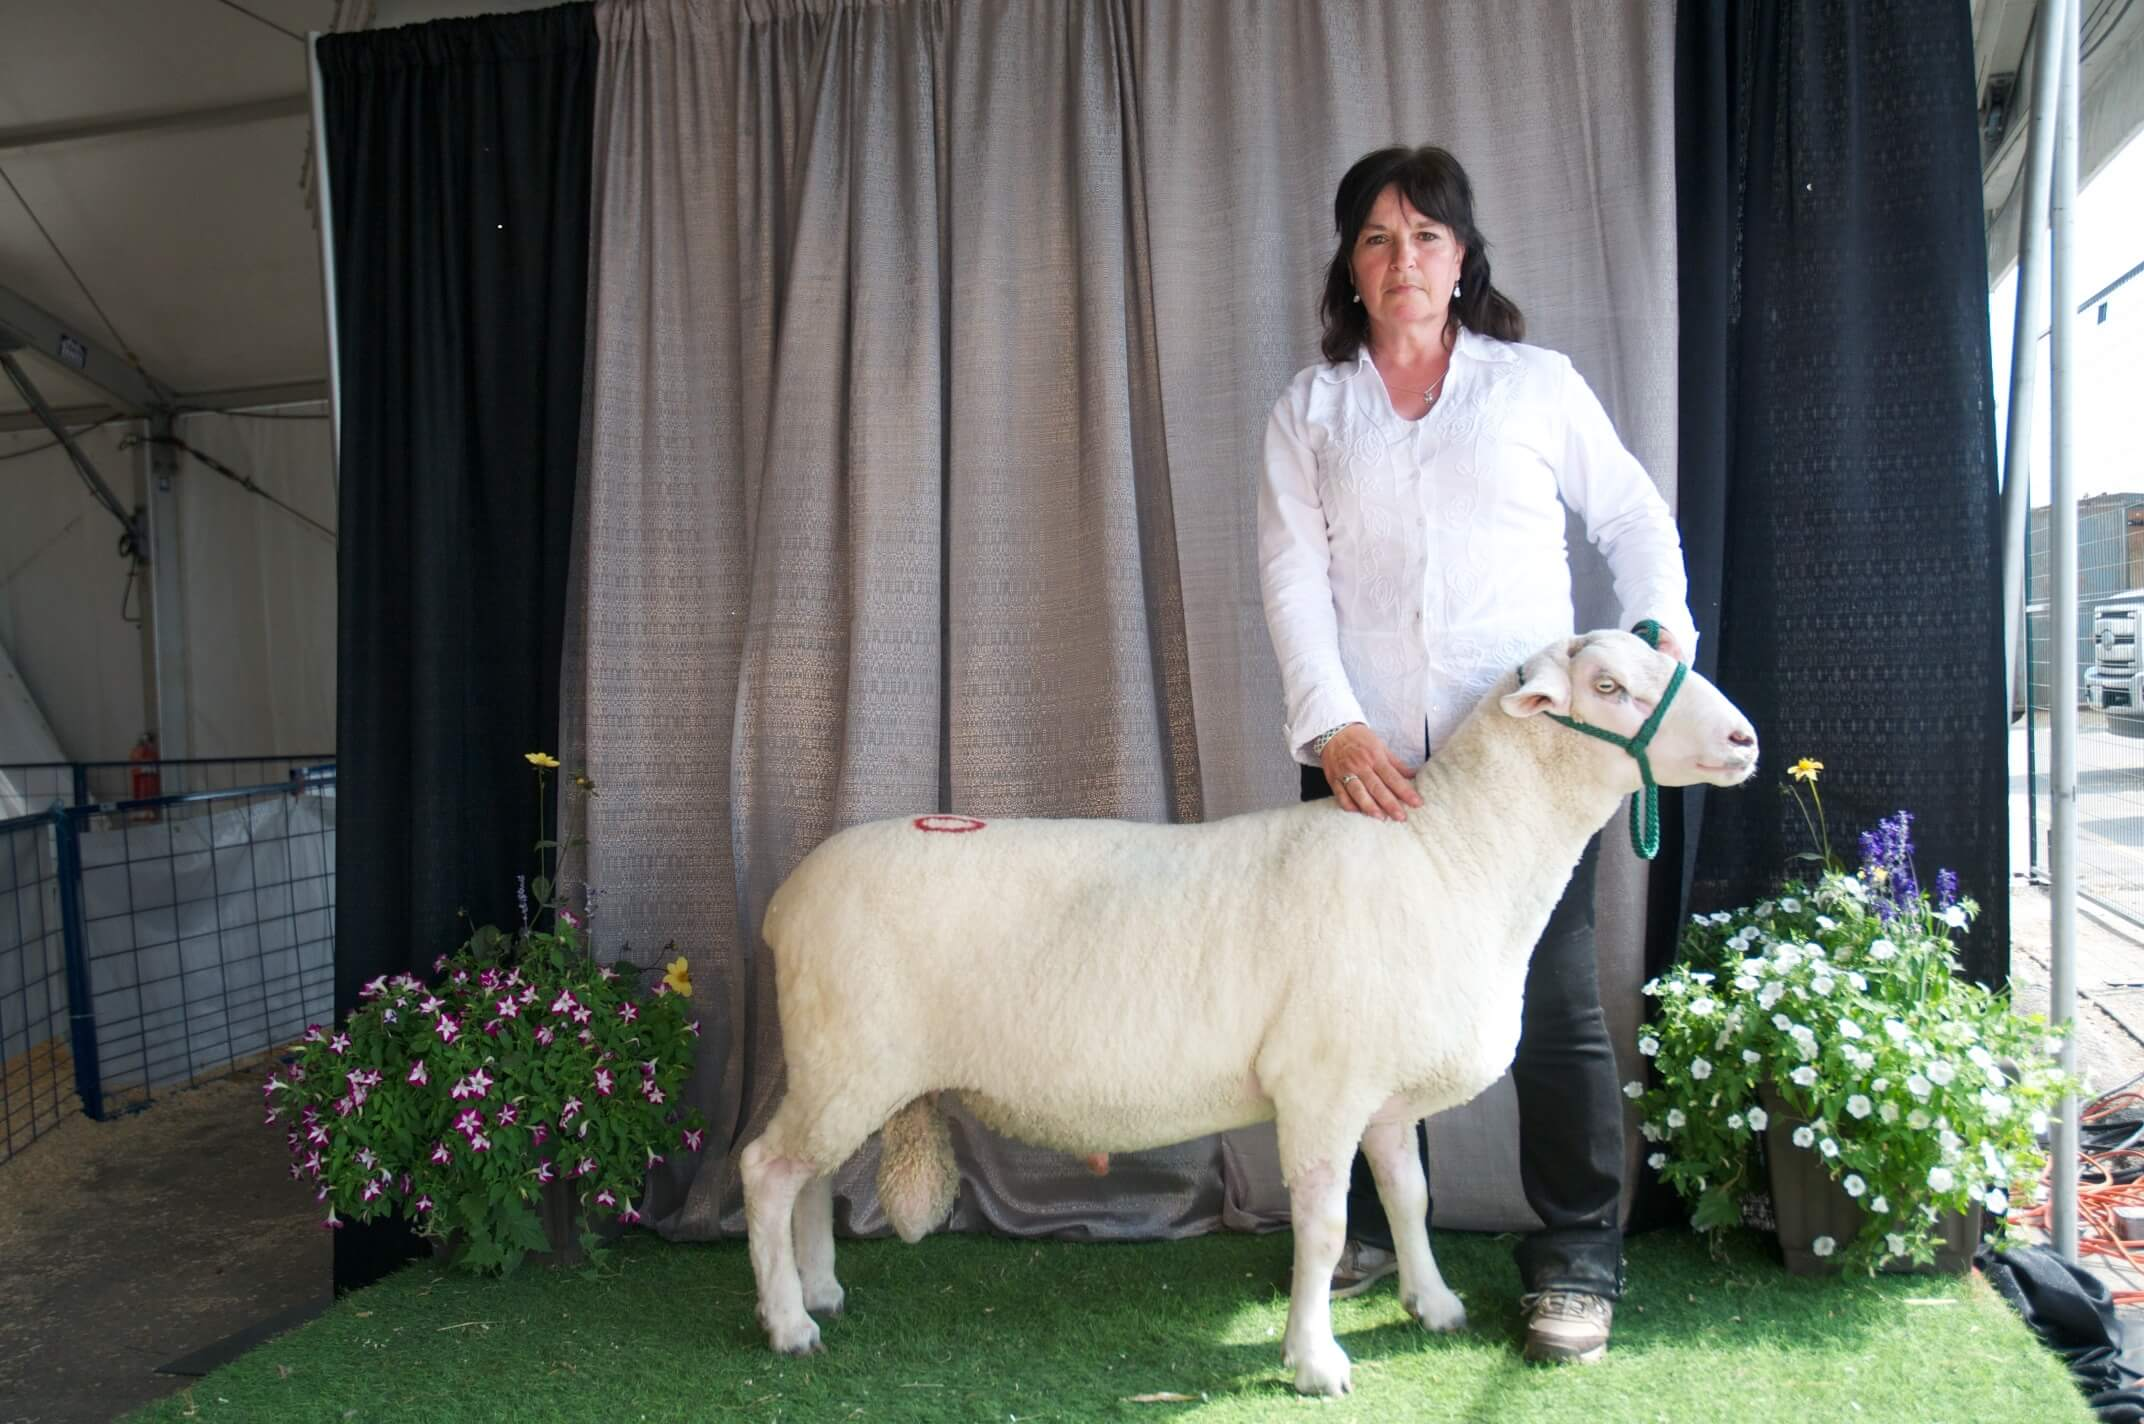 The author posing with a purebred sheep